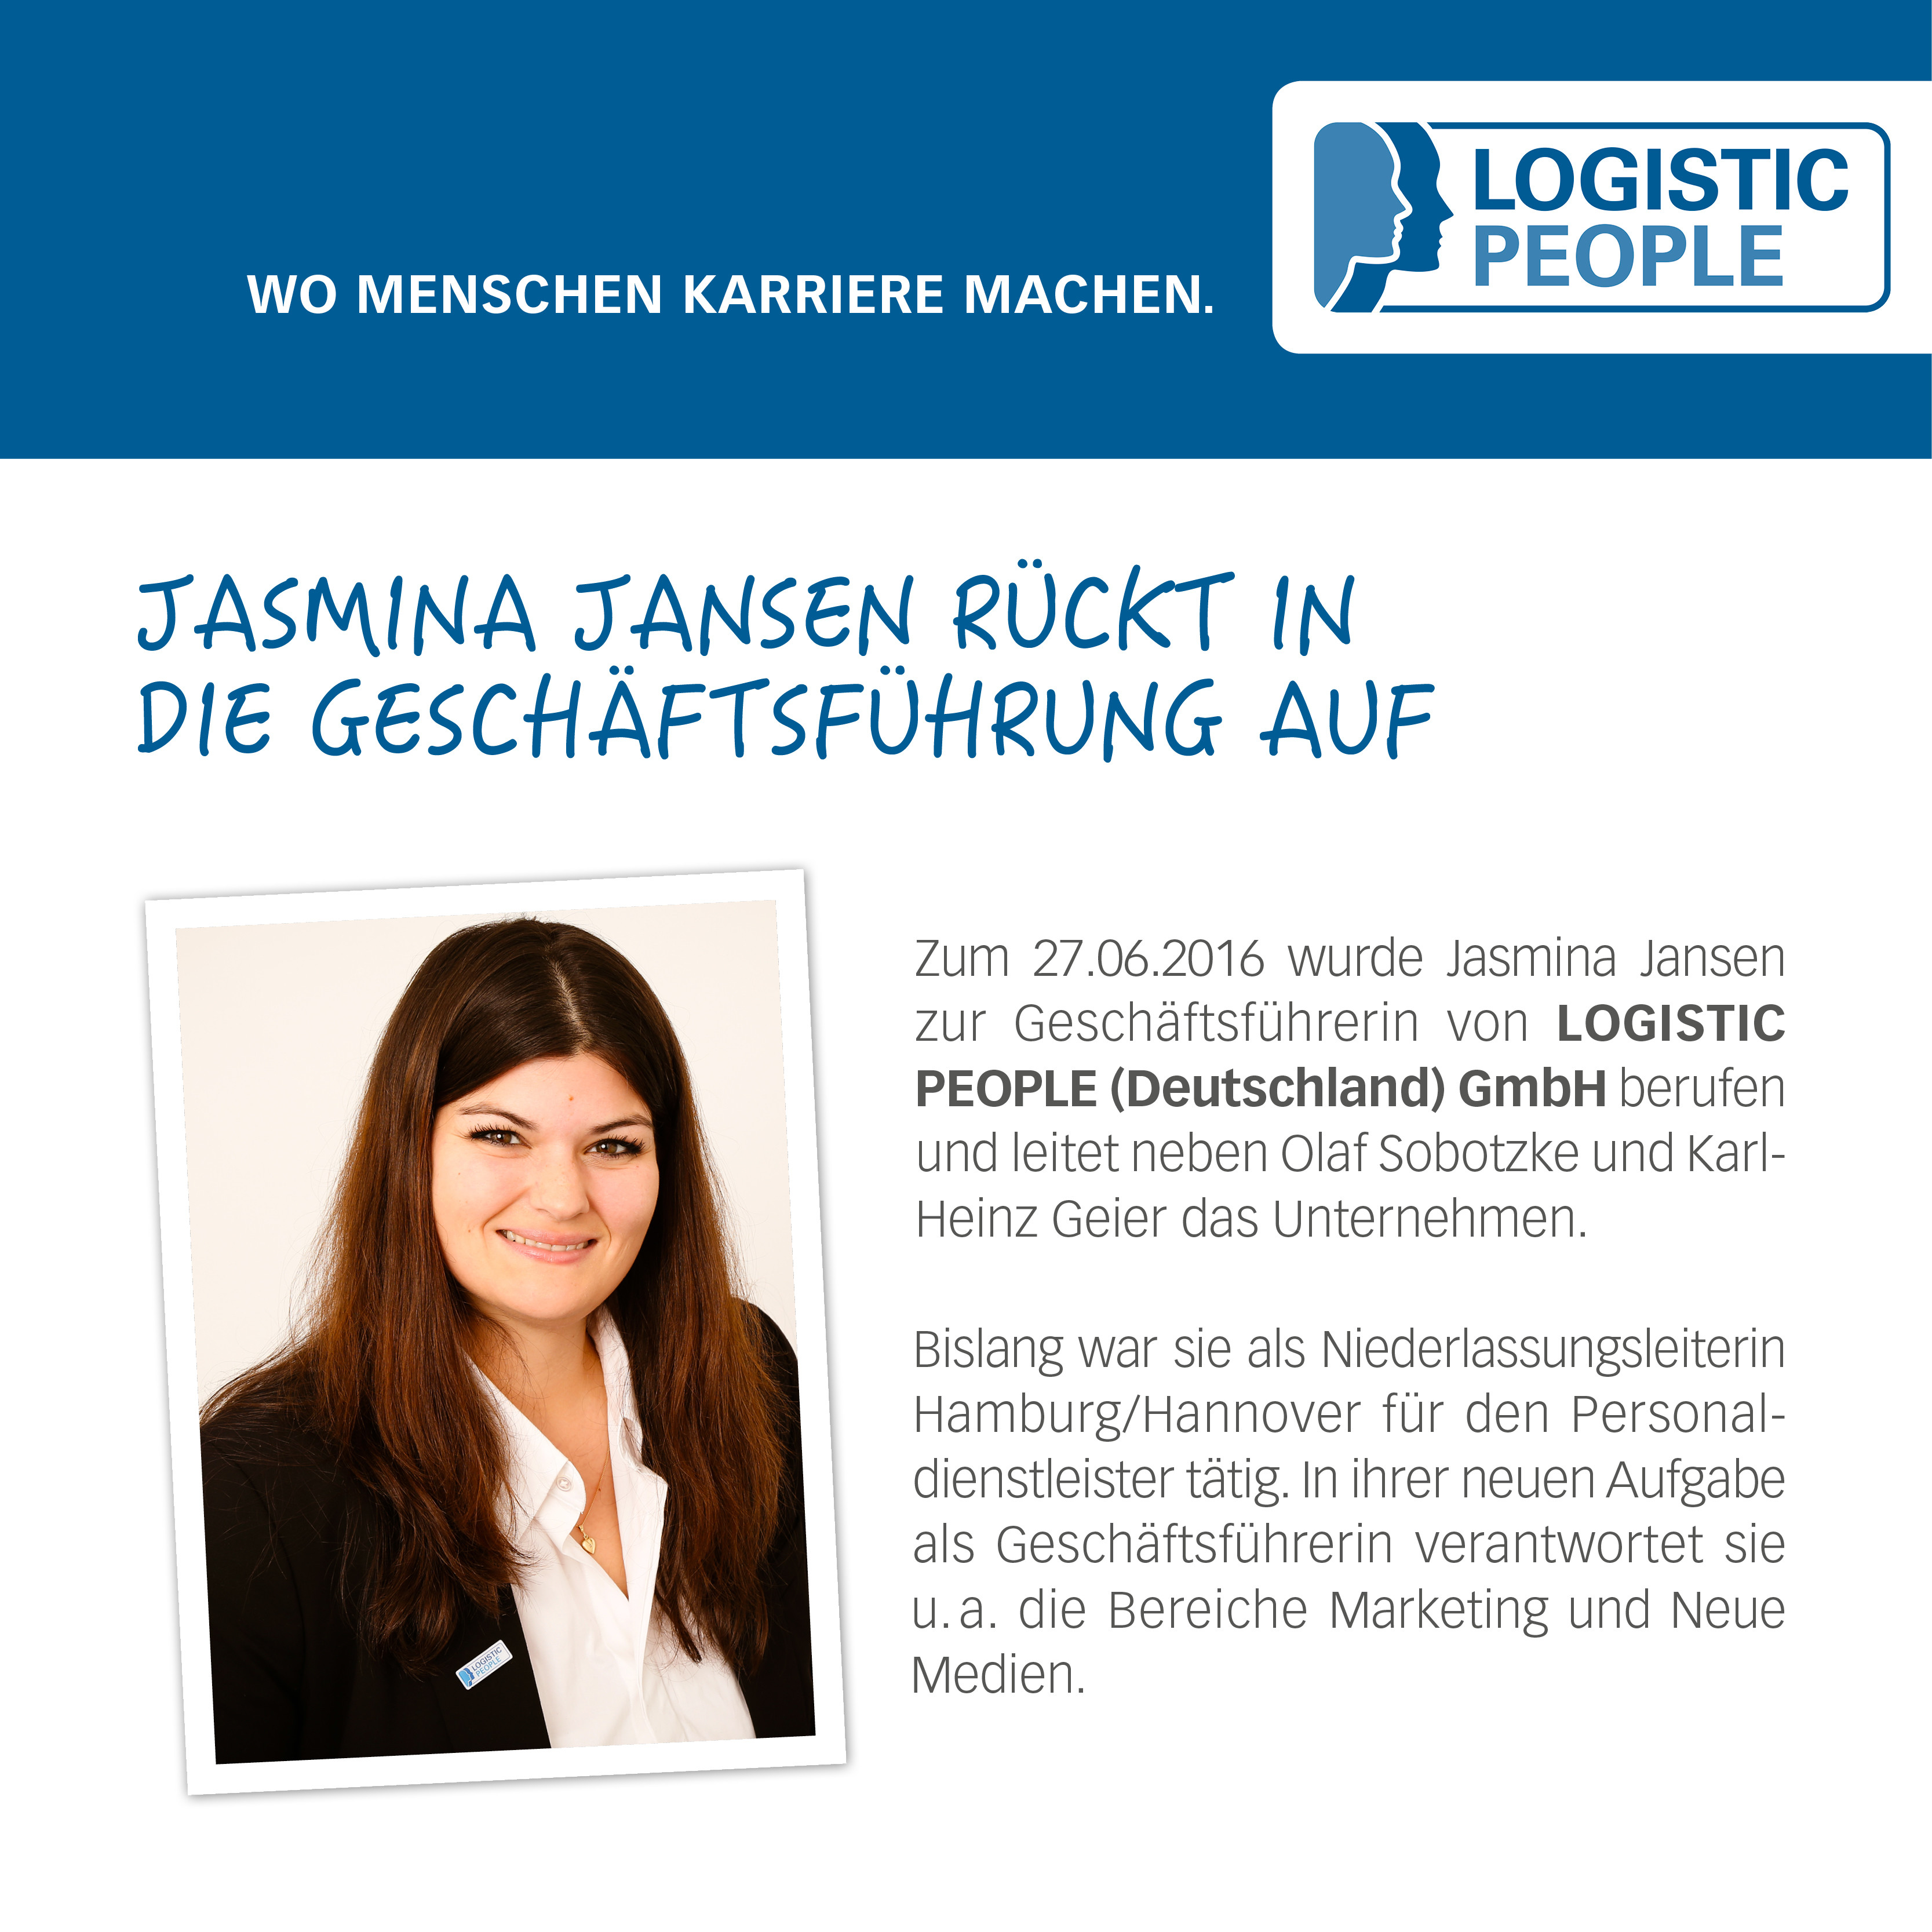 jasmina jansen r ckt in die gesch ftsf hrung auf logistic people logistik jobs und. Black Bedroom Furniture Sets. Home Design Ideas